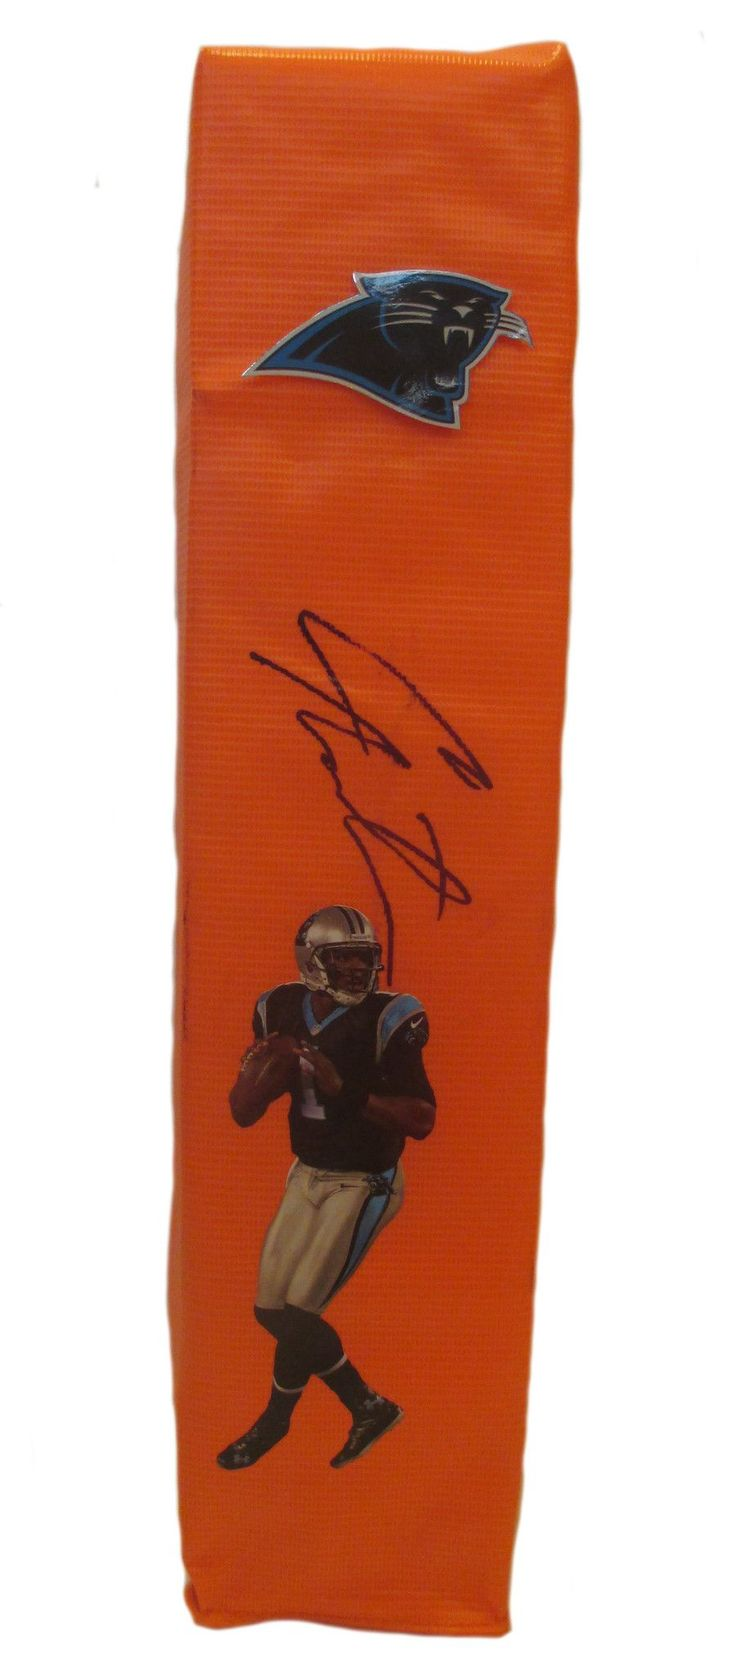 Cam Newton signed Carolina Panthers full size football touchdown end zone pylon w/ proof photo.  Proof photo of Cam signing will be included with your purchase along with a COA issued from Southwestconnection-Memorabilia, guaranteeing the item to pass authentication services from PSA/DNA or JSA. Free USPS shipping. www.AutographedwithProof.com is your one stop for autographed collectibles from Carolina Panthers & NFL teams. Check back with us often, as we are always obtaining new items.